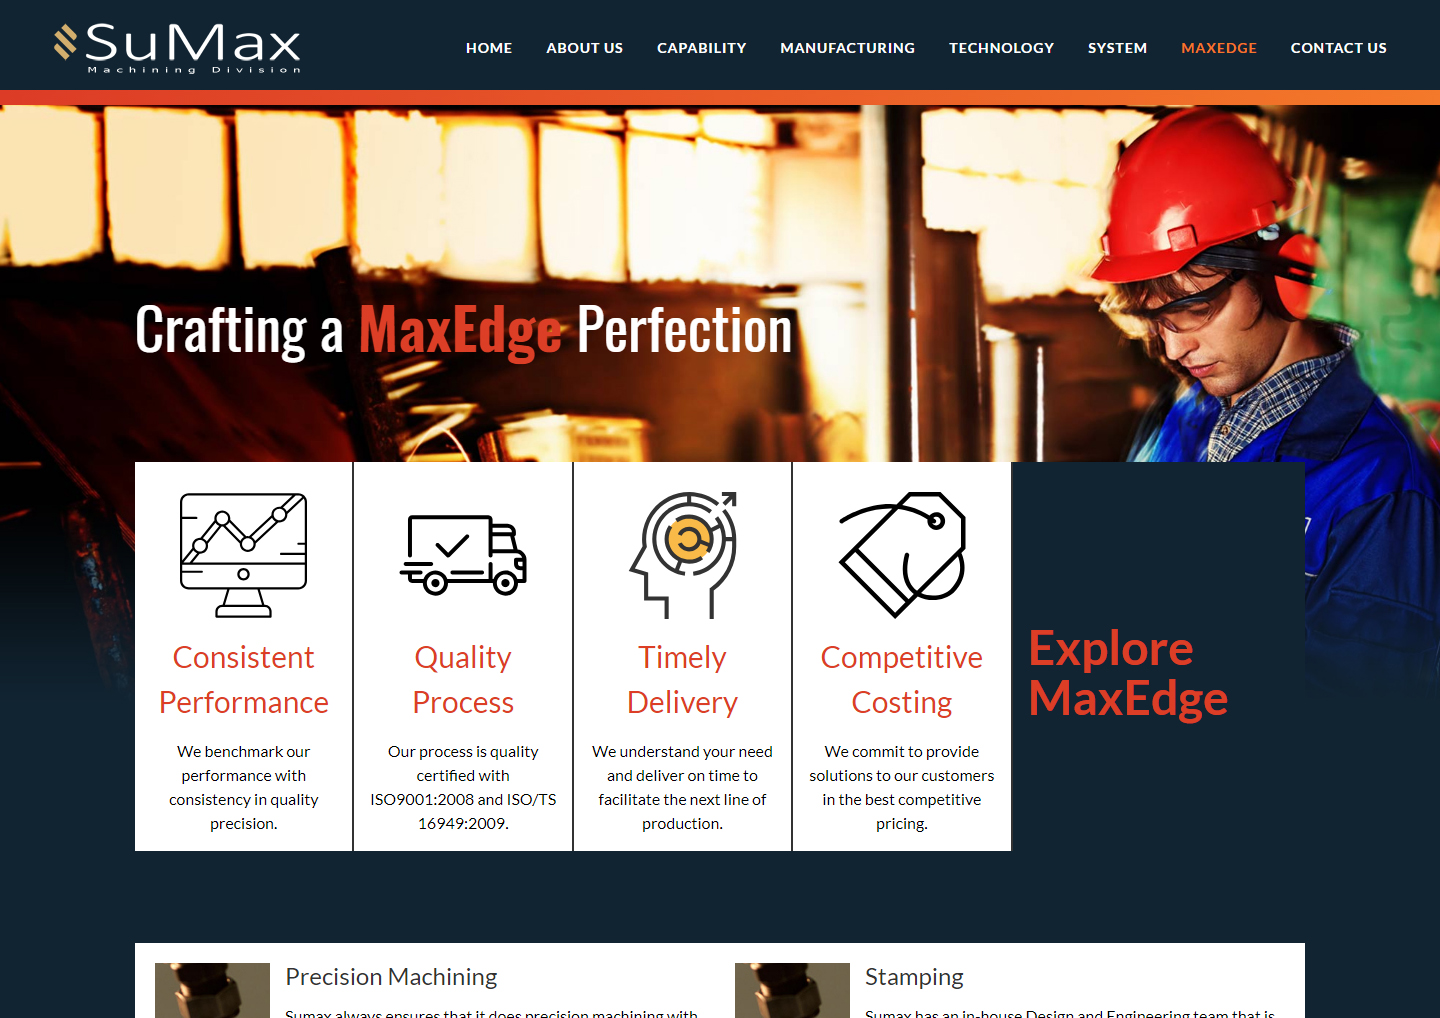 Impals Website Development - Sumax Machining